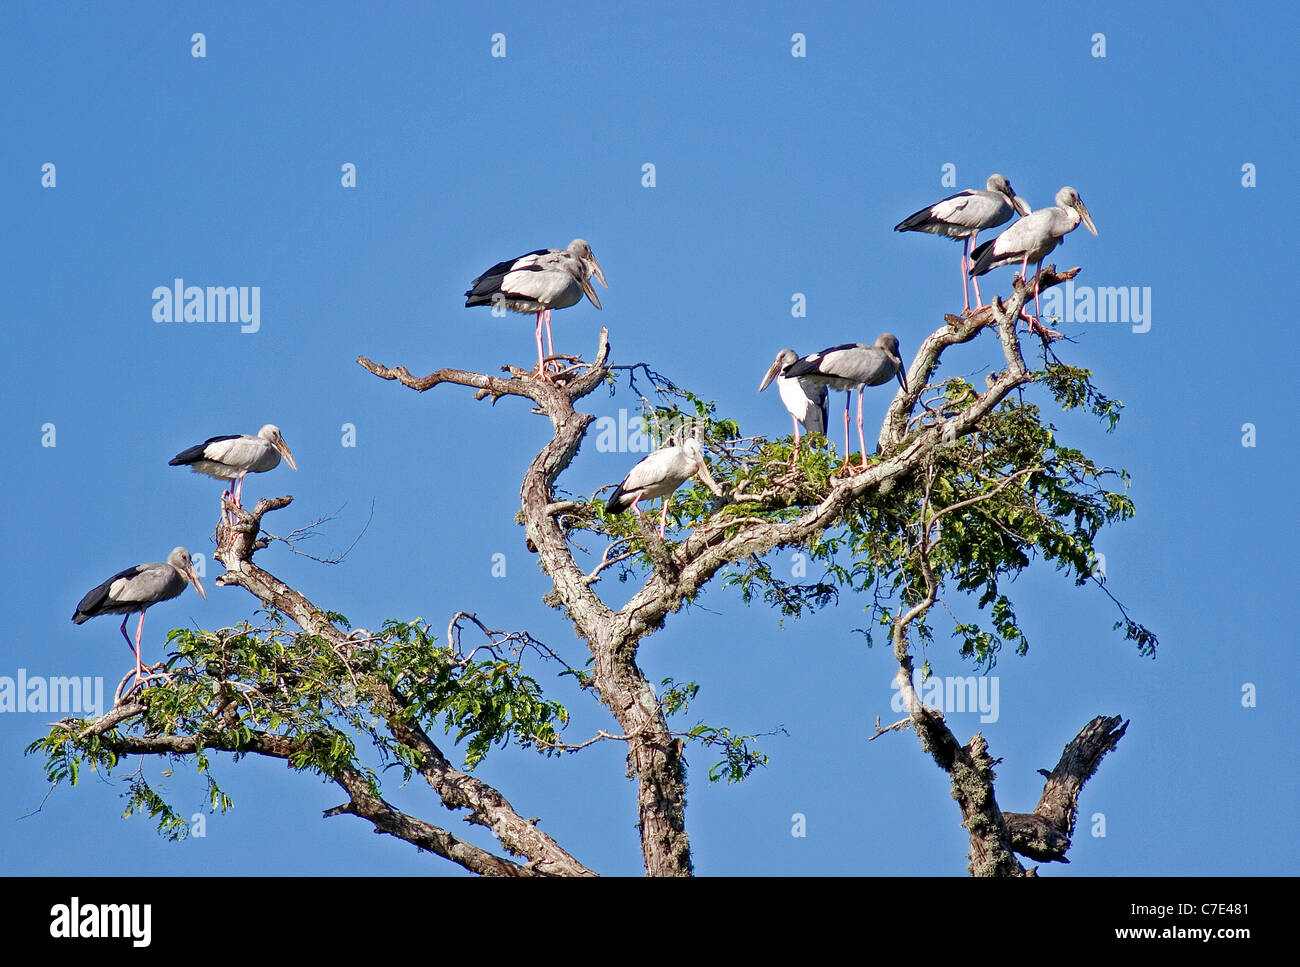 Bec ouvert d'Asie Sri Lanka oscitante storksanastomus Photo Stock